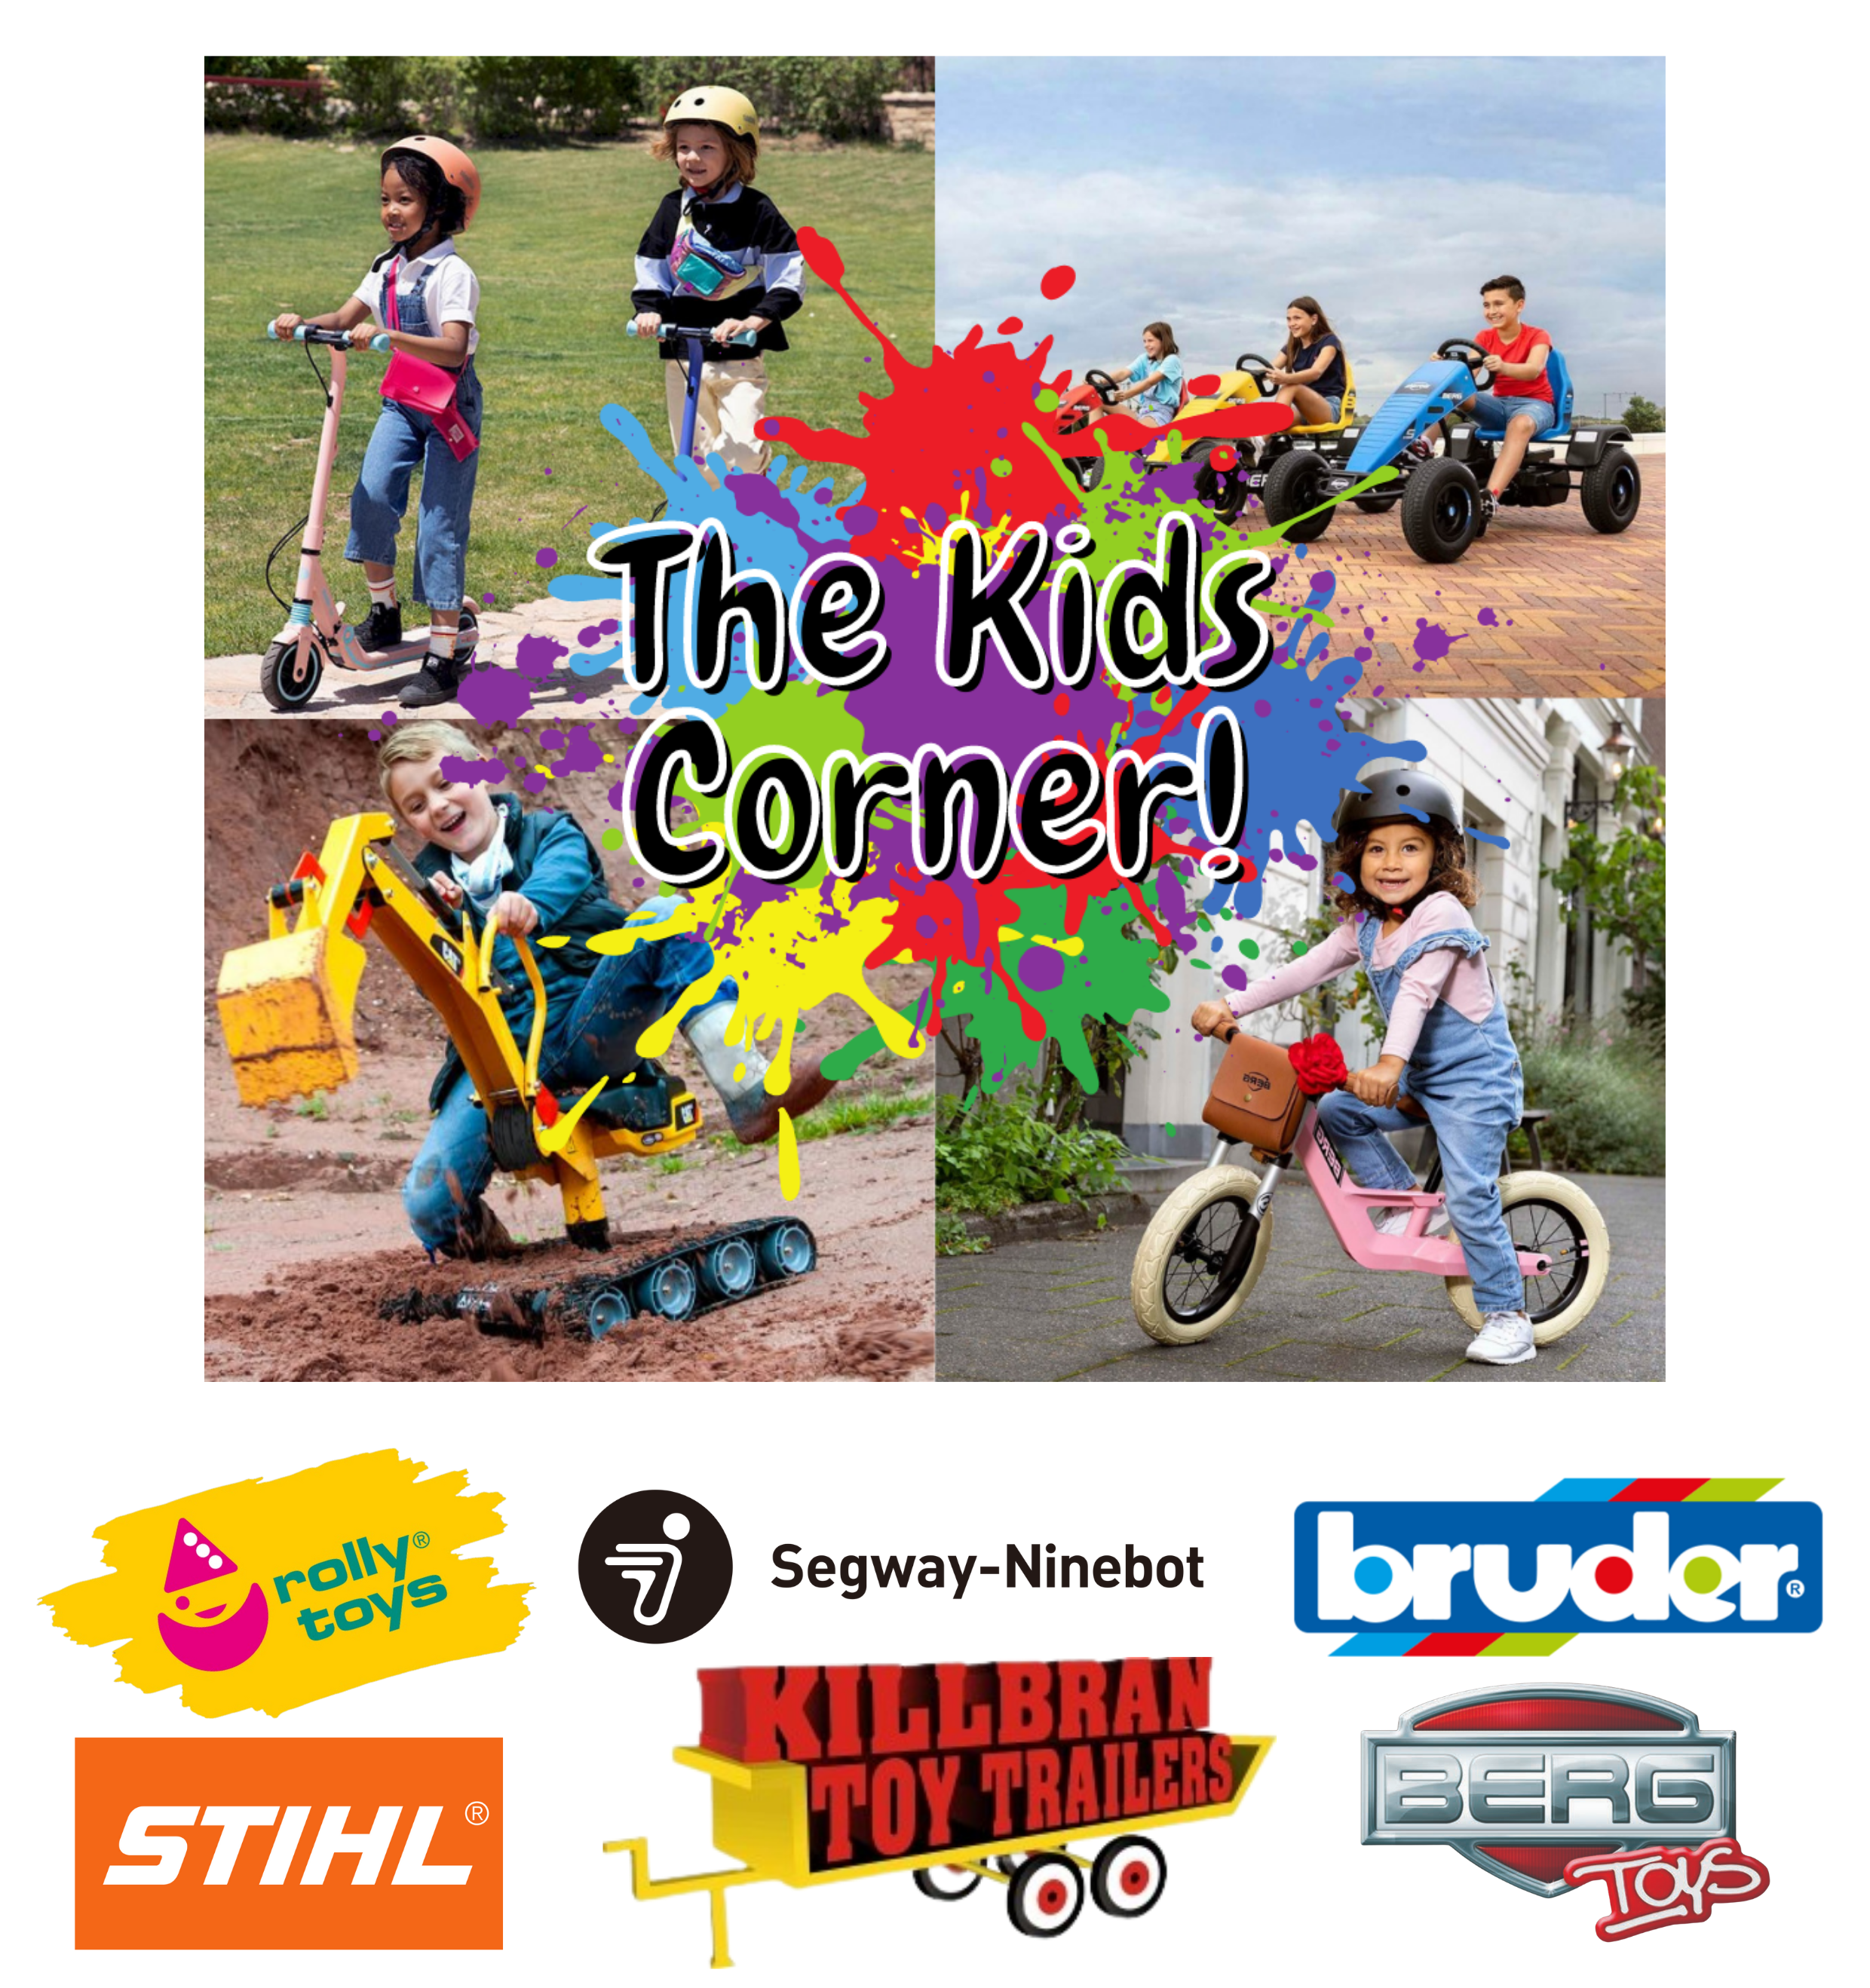 the-kids-corner-poster-2-png.png